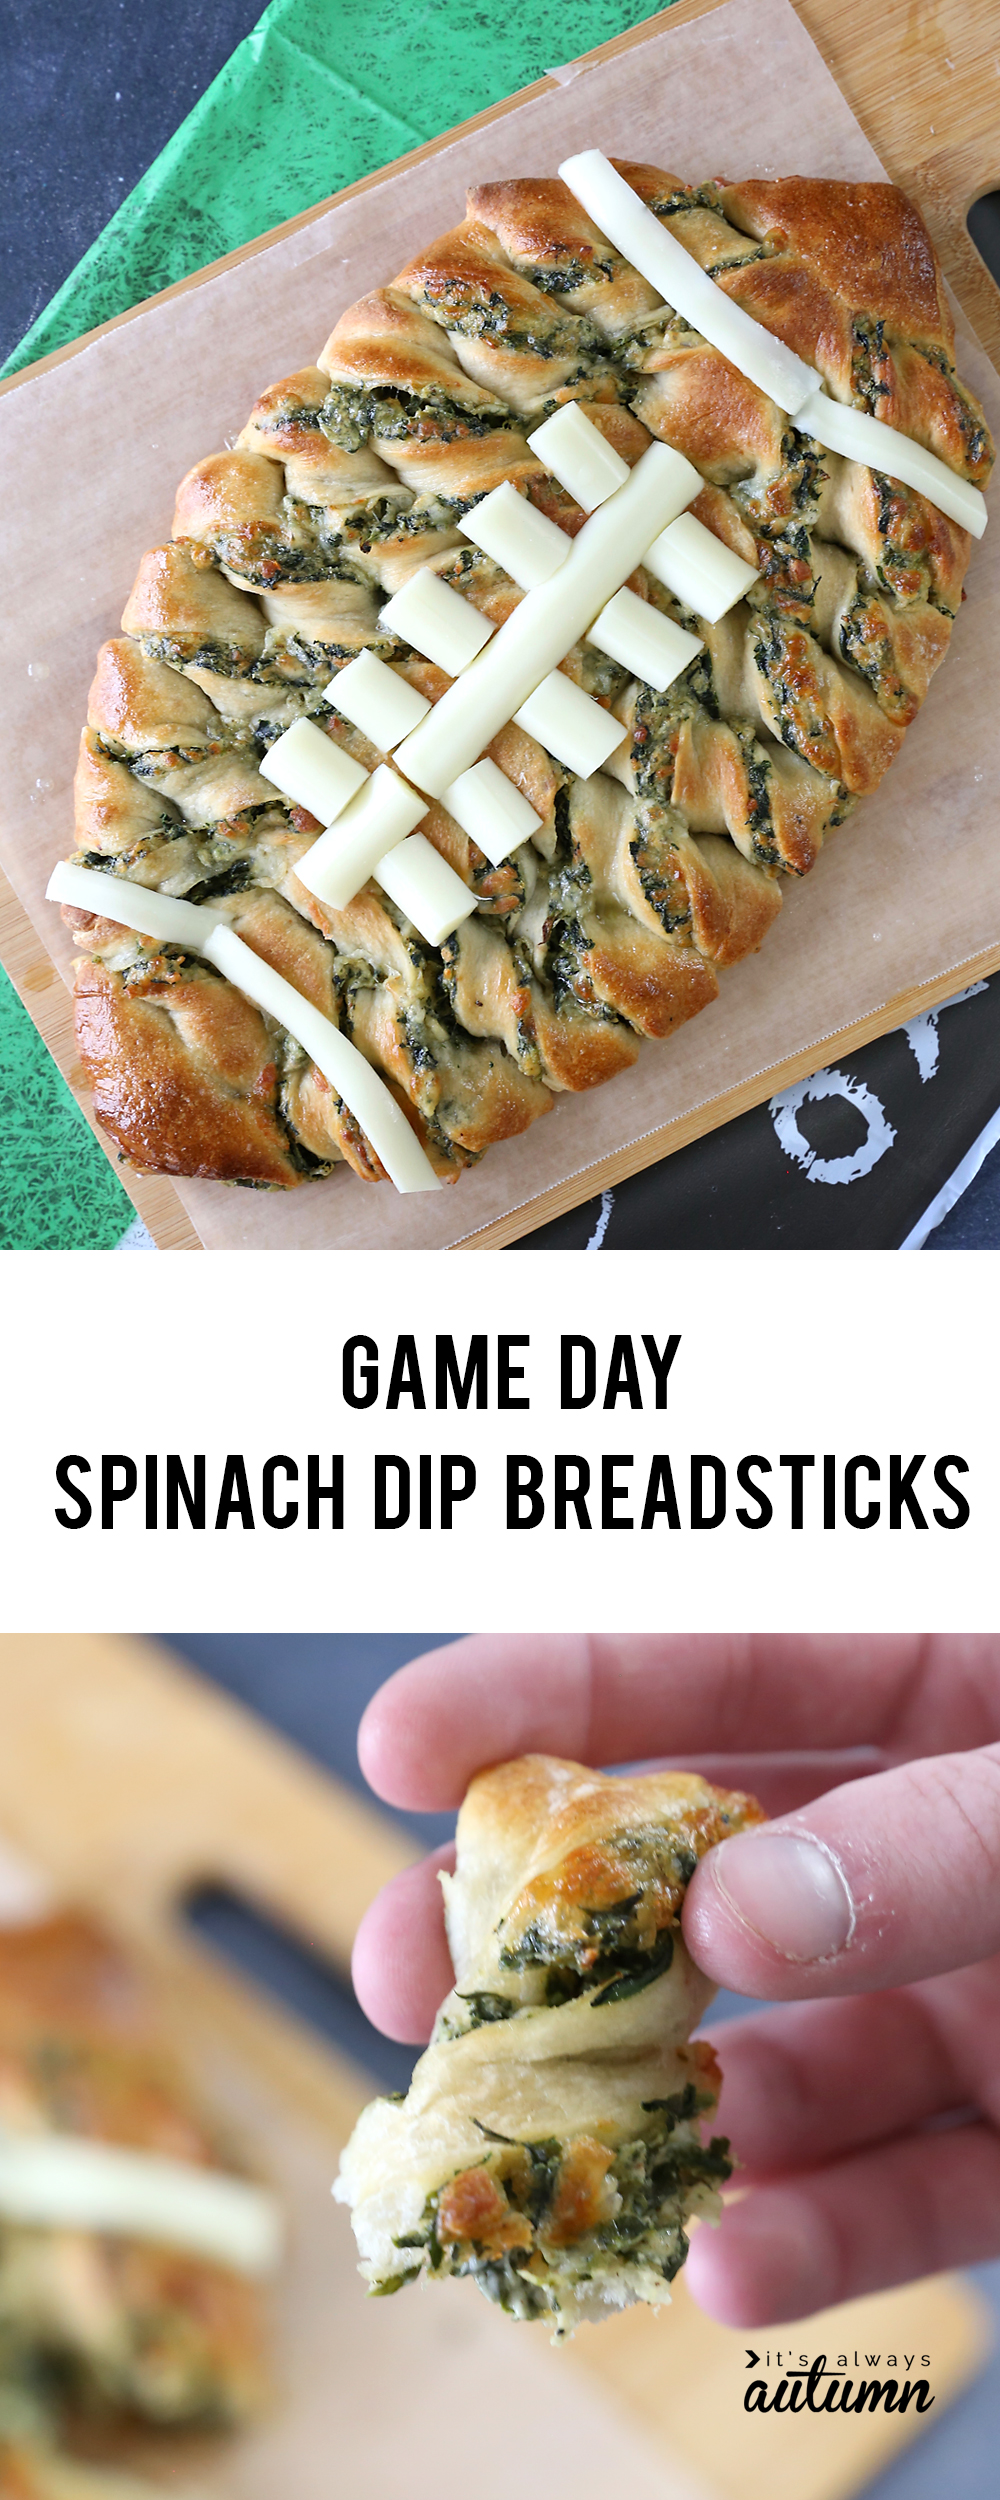 These football shaped breadsticks are stuffed with spinach dip! Perfect Superbowl snack or game day appetizer.